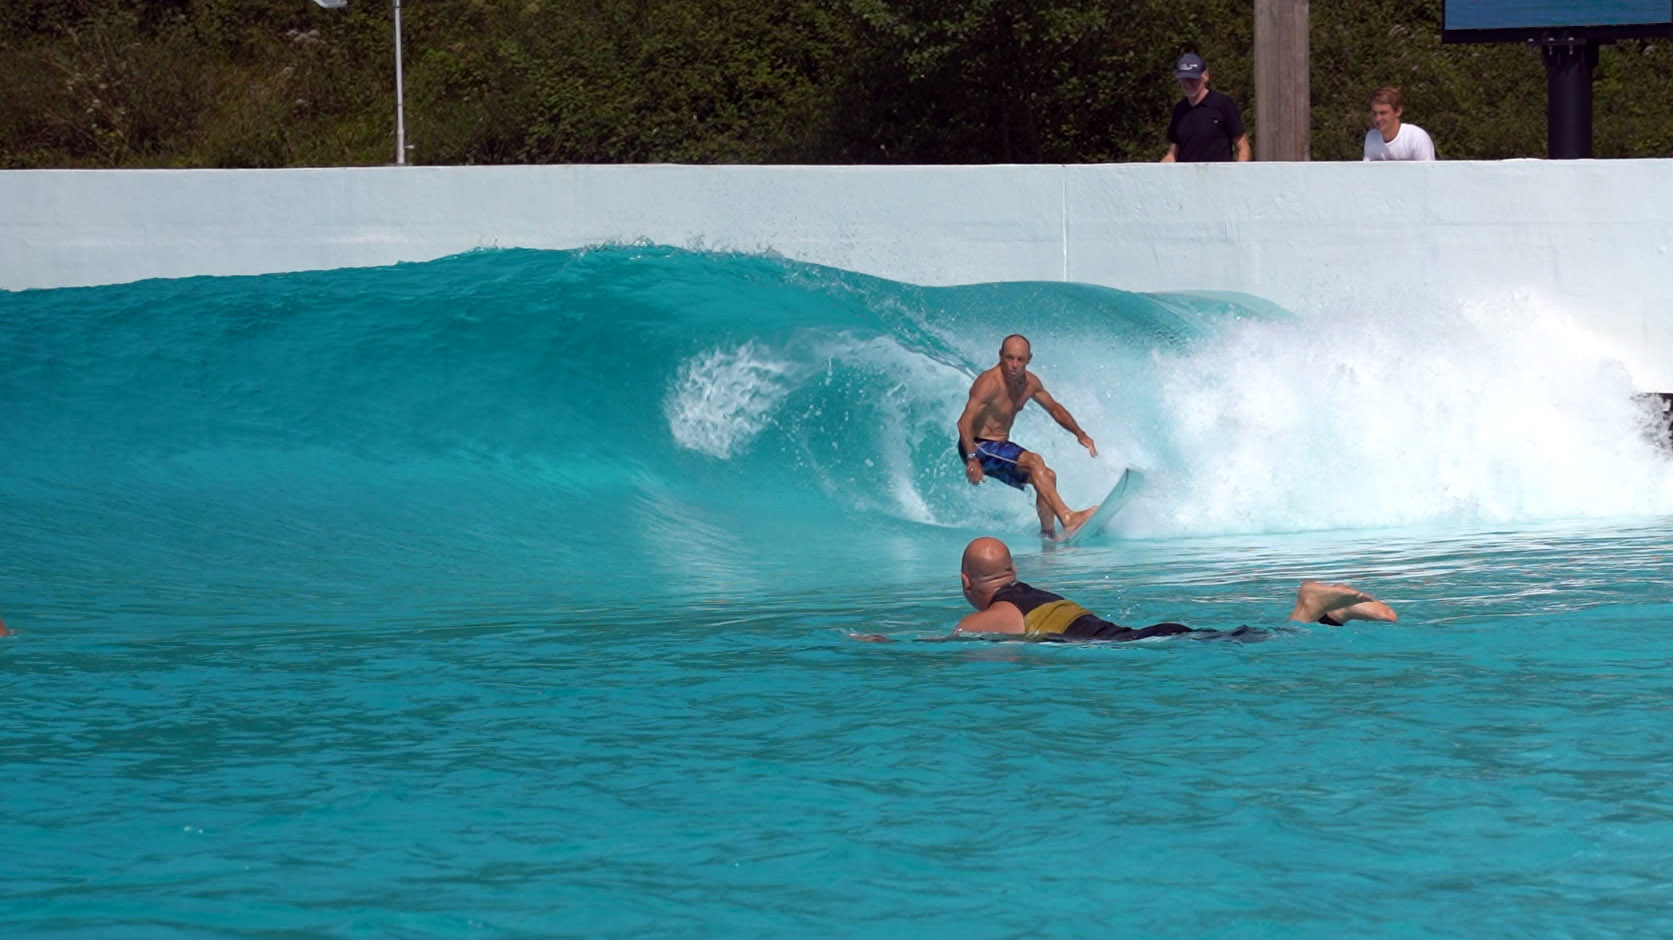 Tom Carroll at Wavegarden